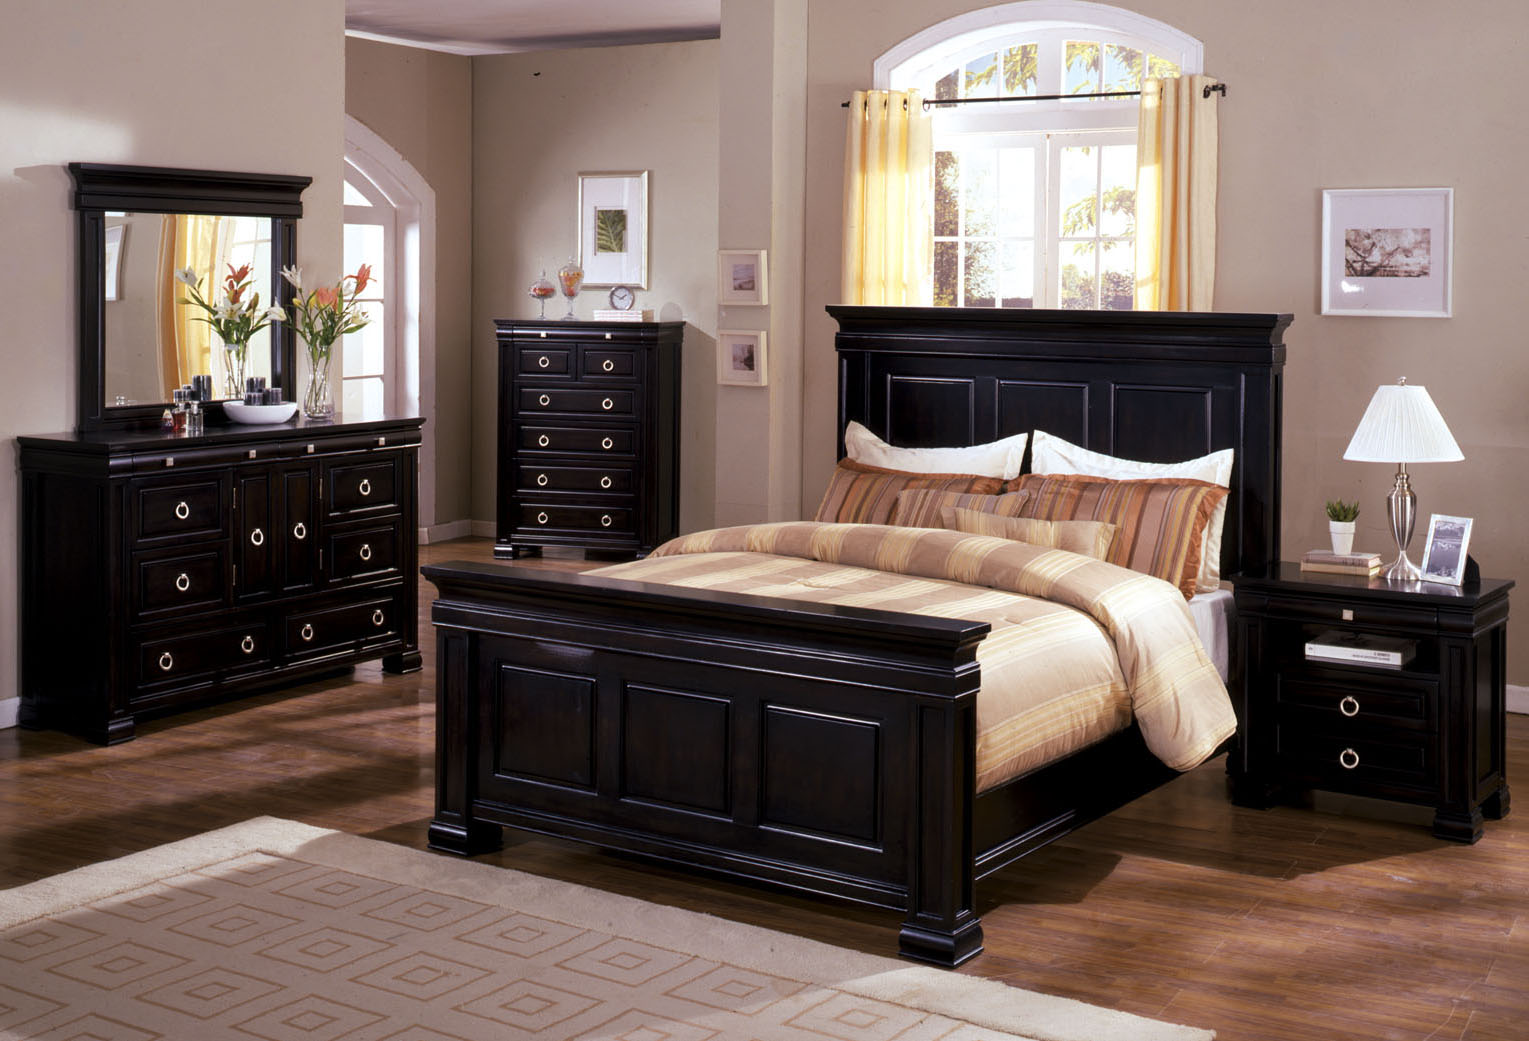 Black brown bedroom furniture | Hawk Haven